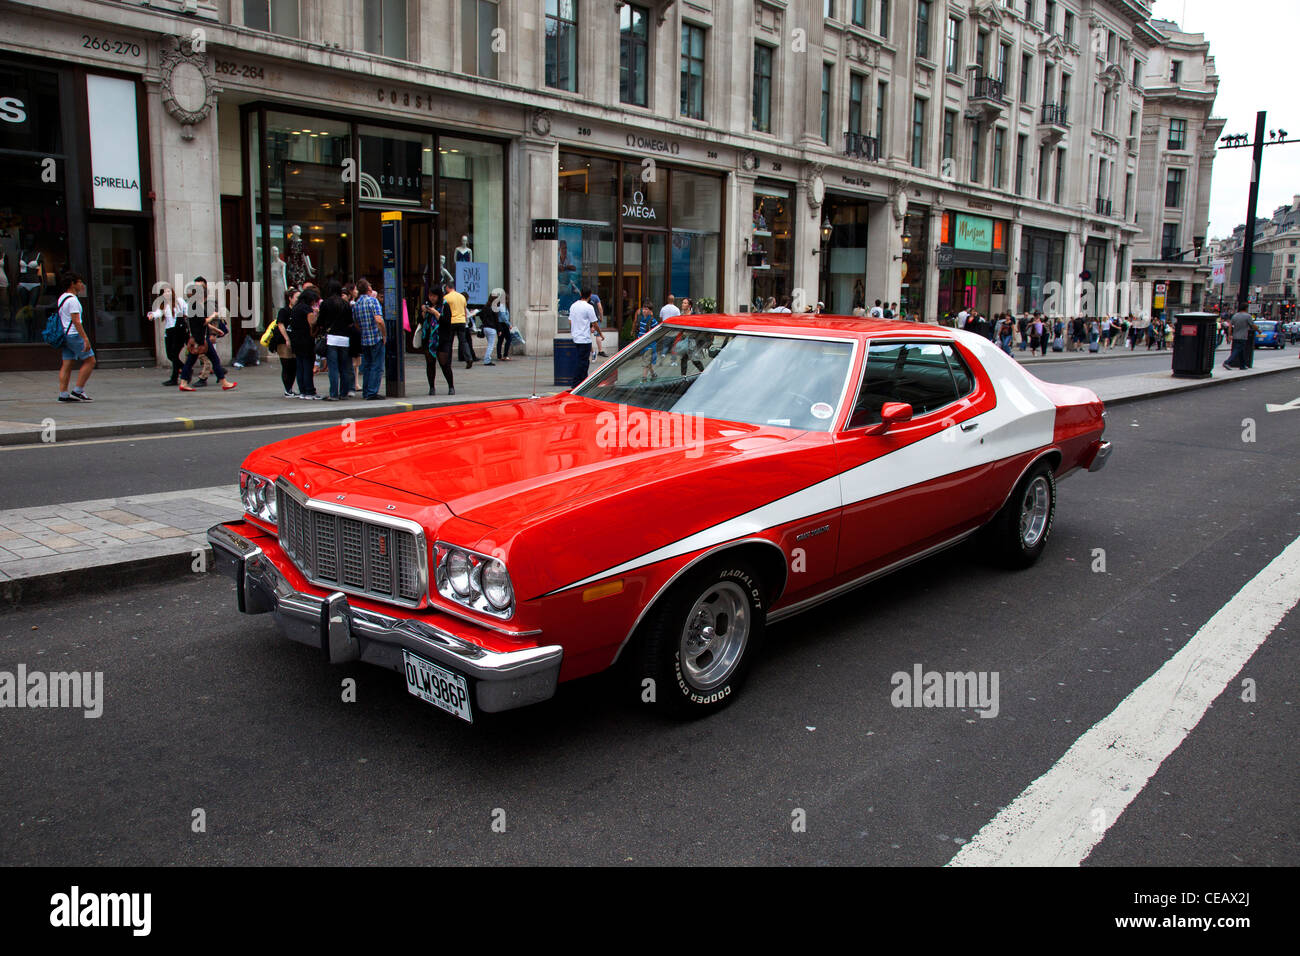 The famous red car used in the hit American movie and tv show ...